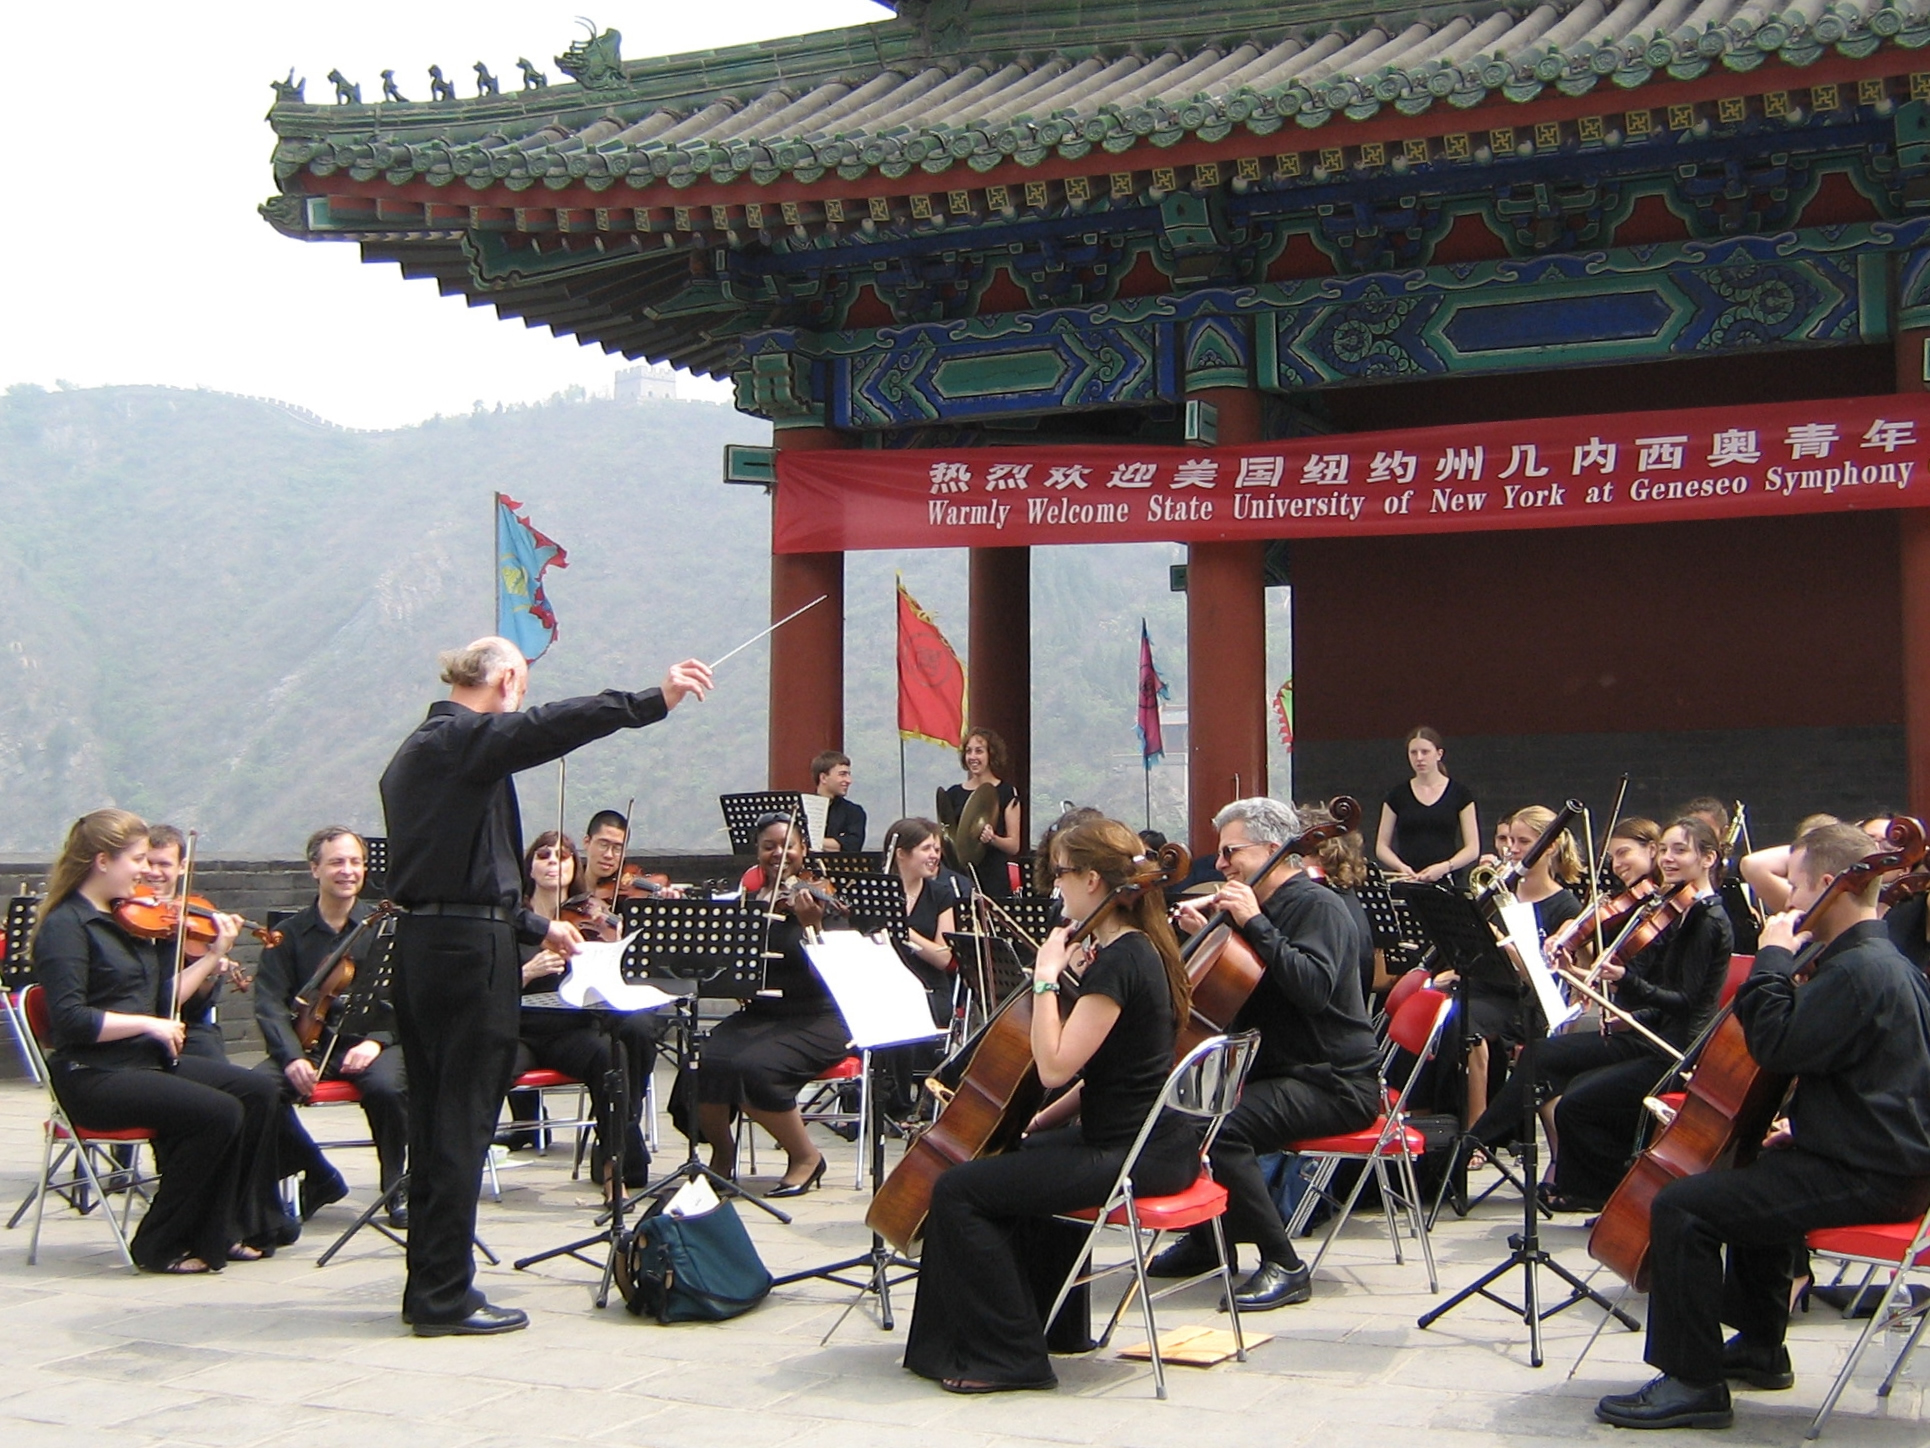 Orchestra on the Great Wall of China